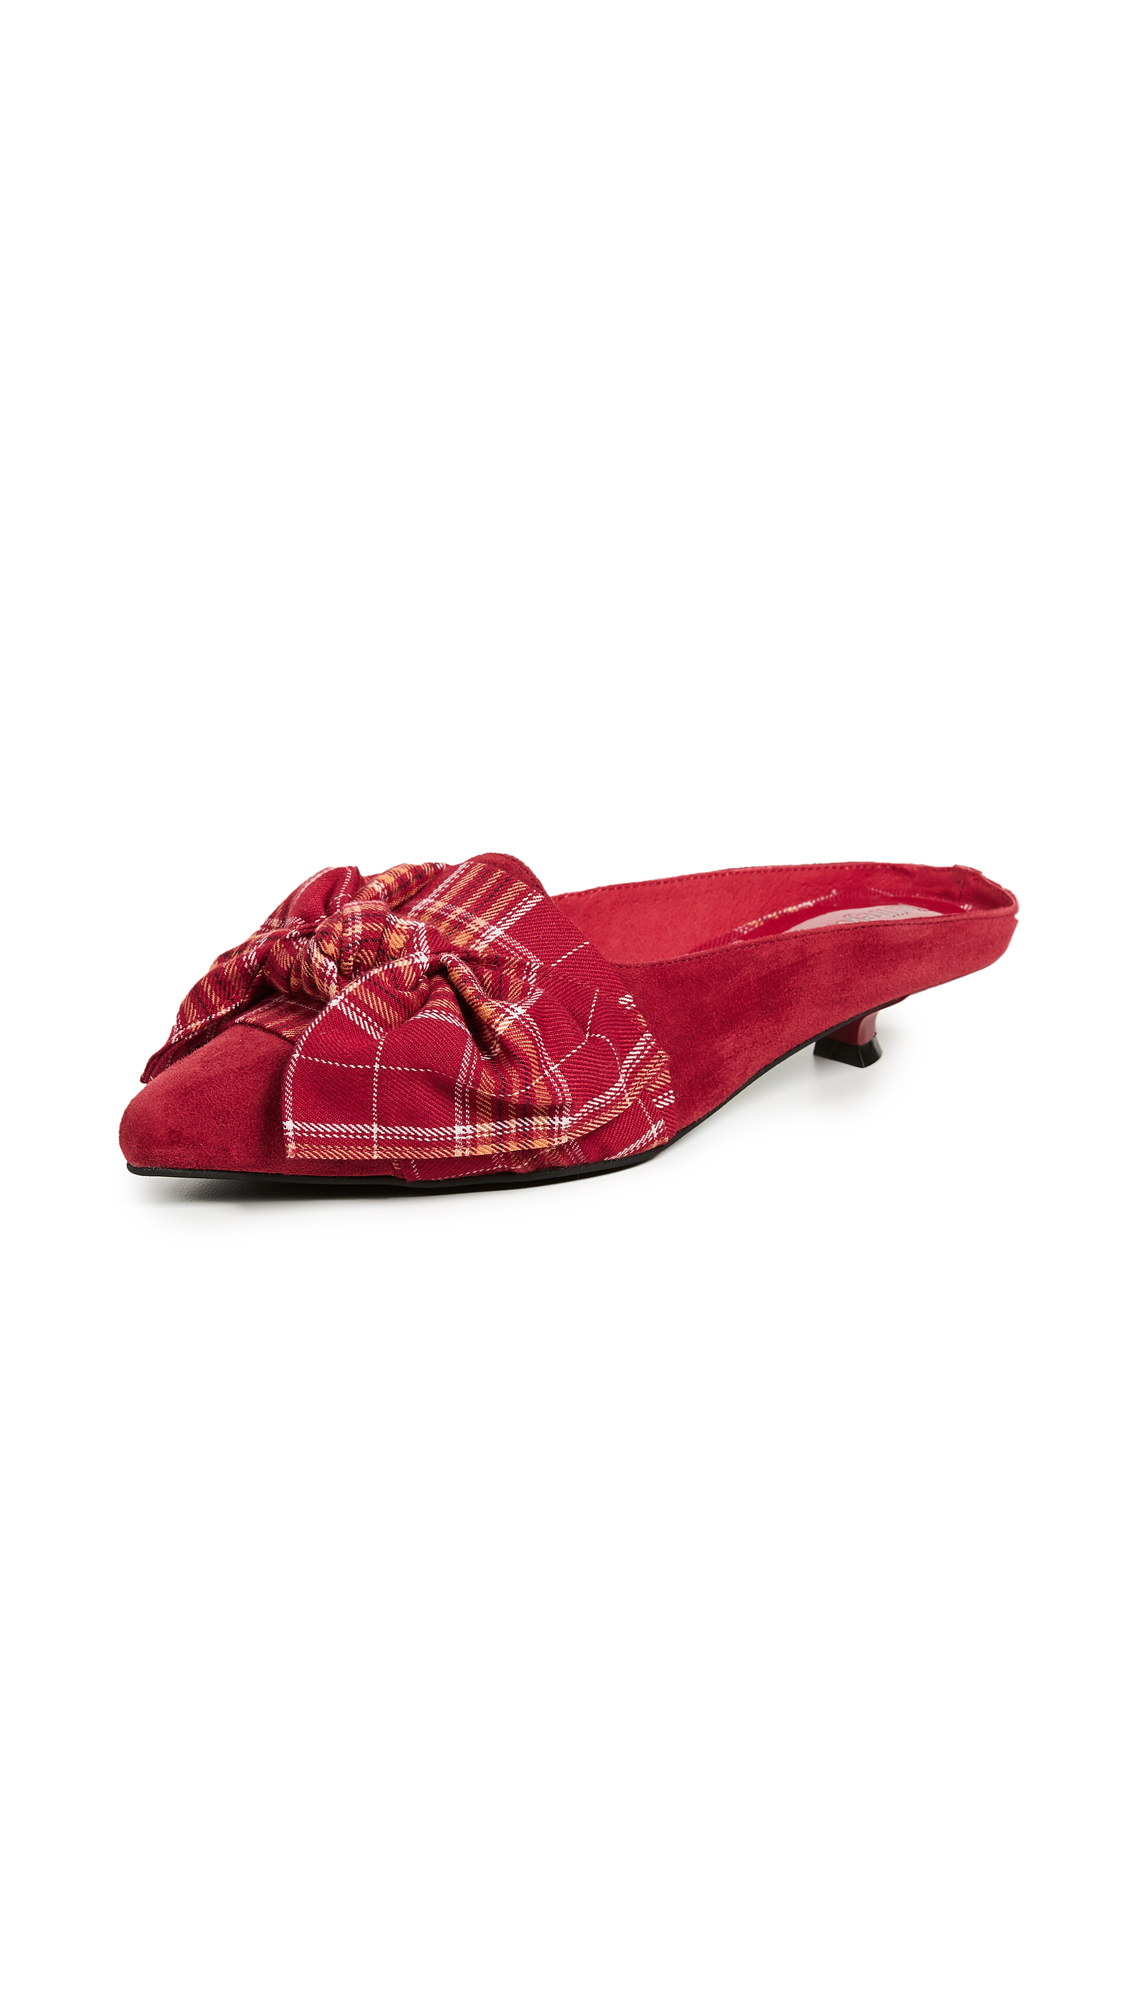 Jeffrey Campbell Graceful Point Toe Mules - Red